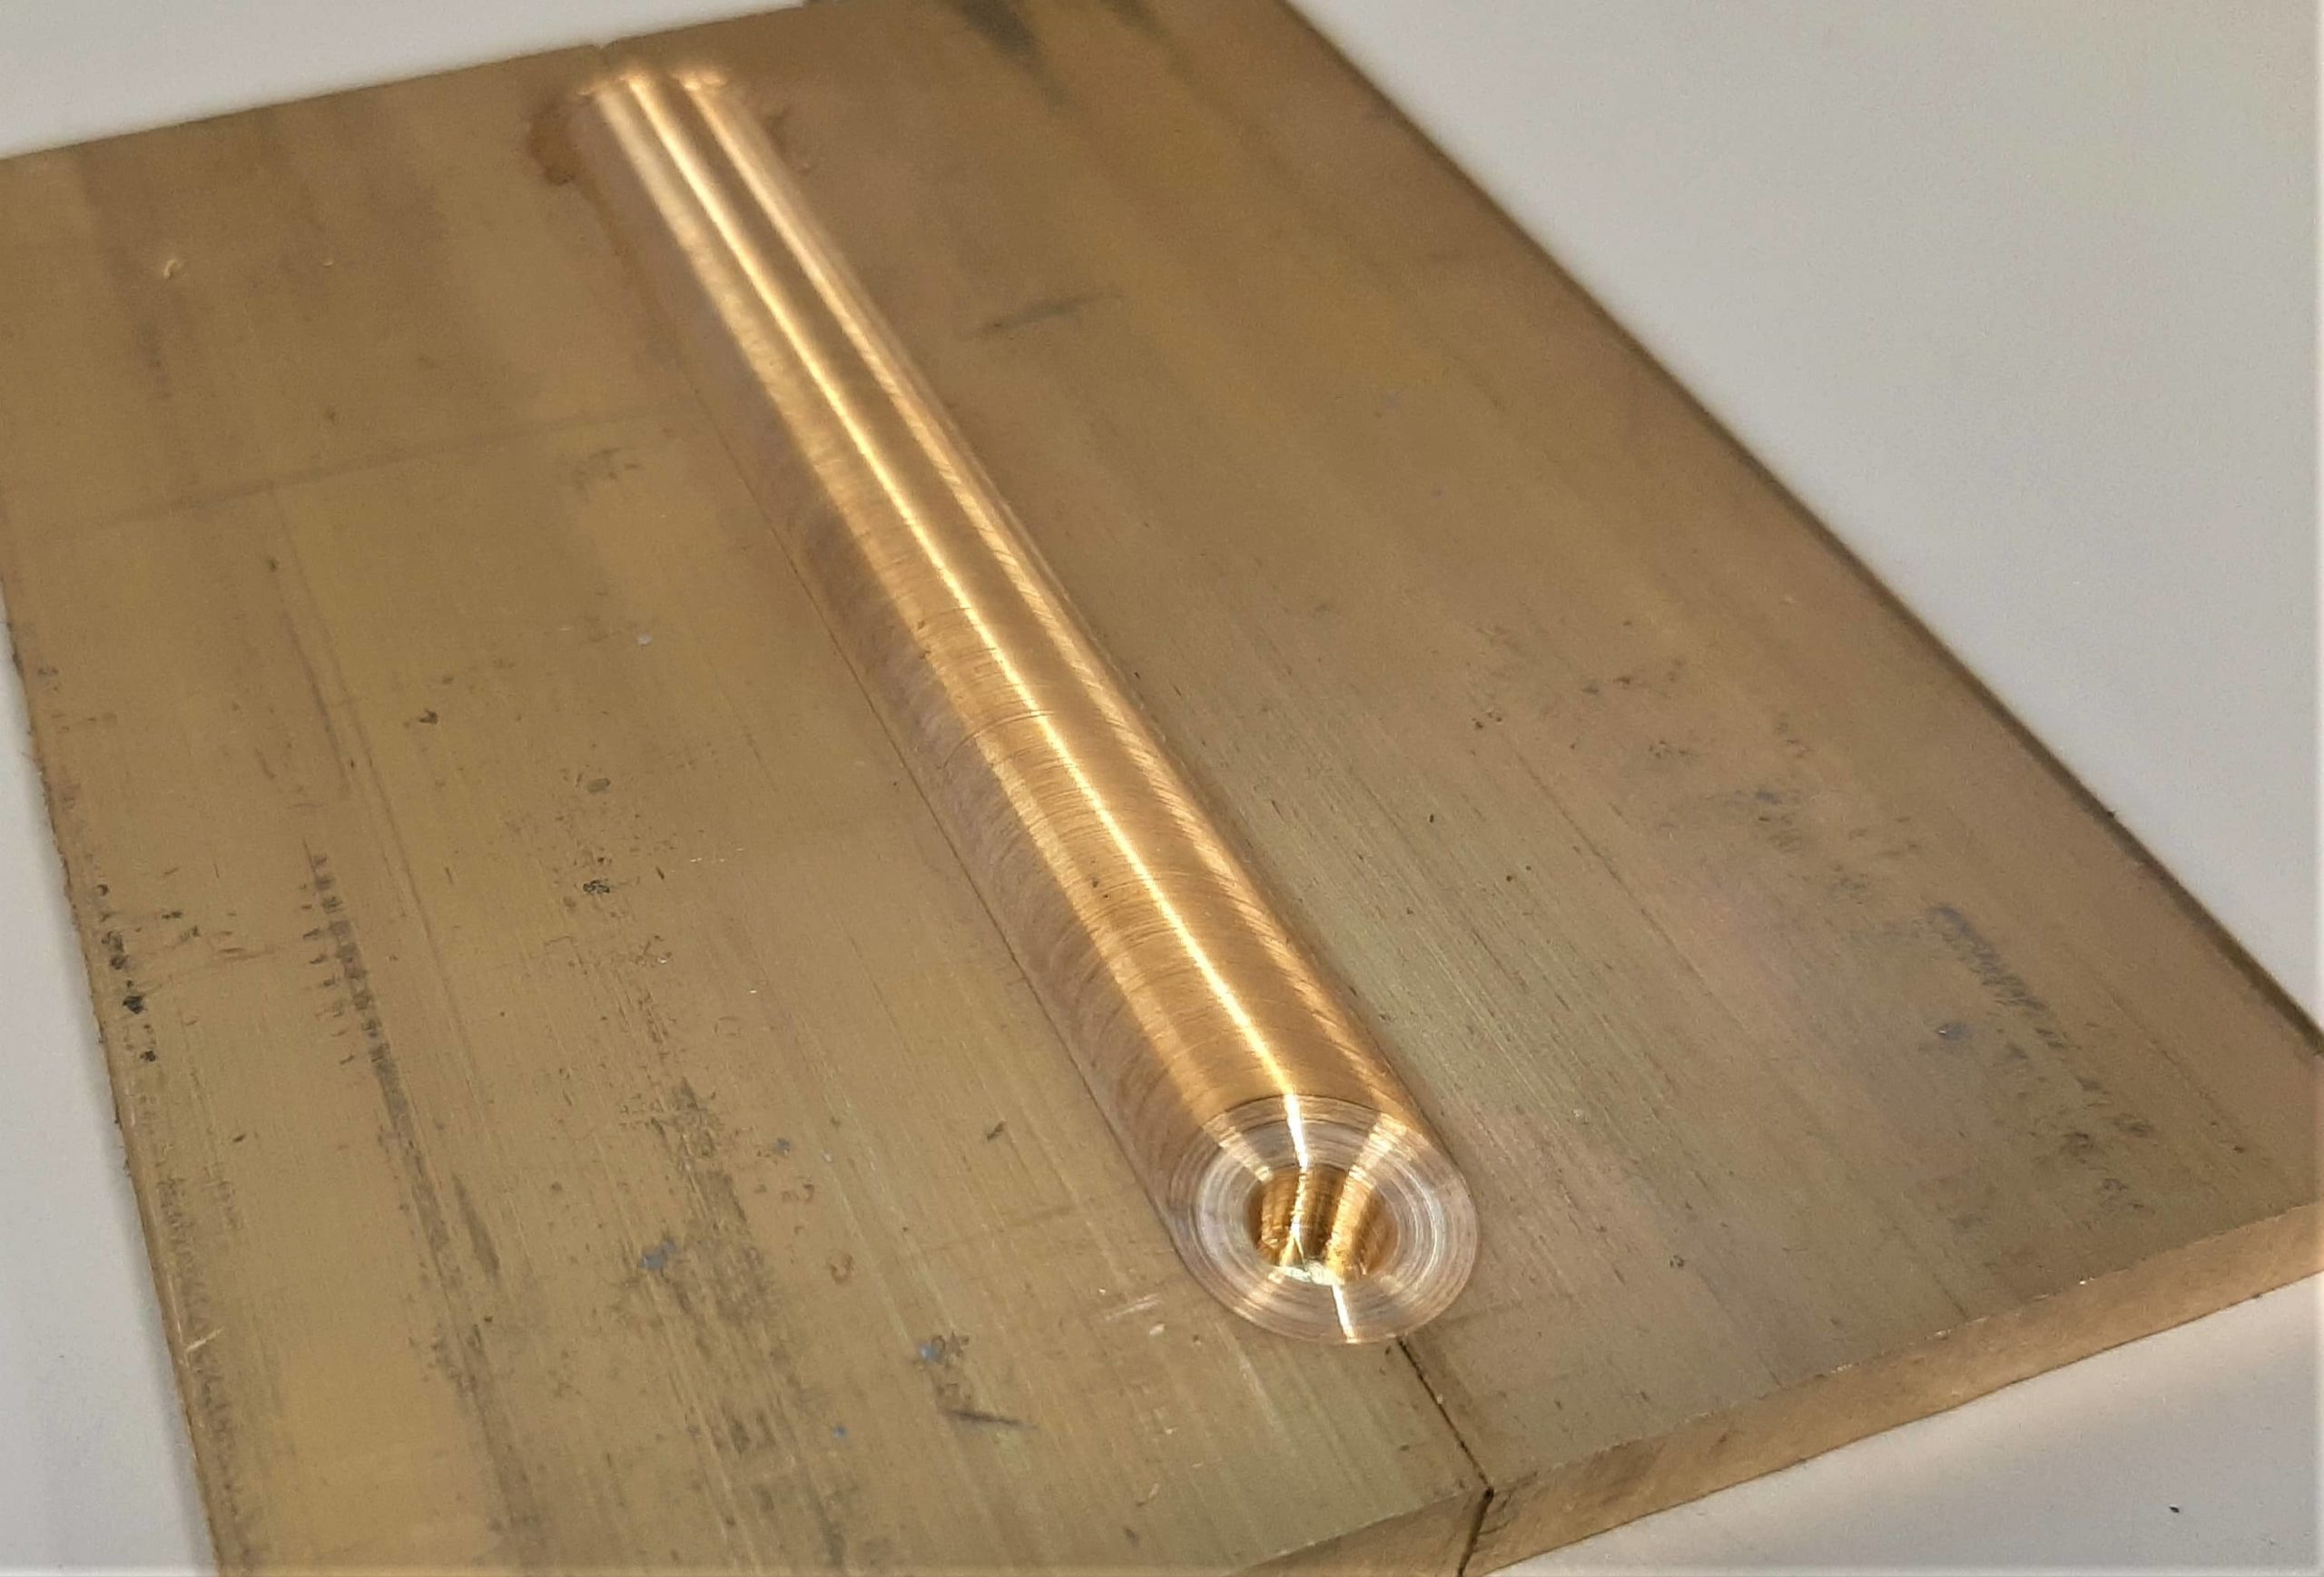 FSW of brass components